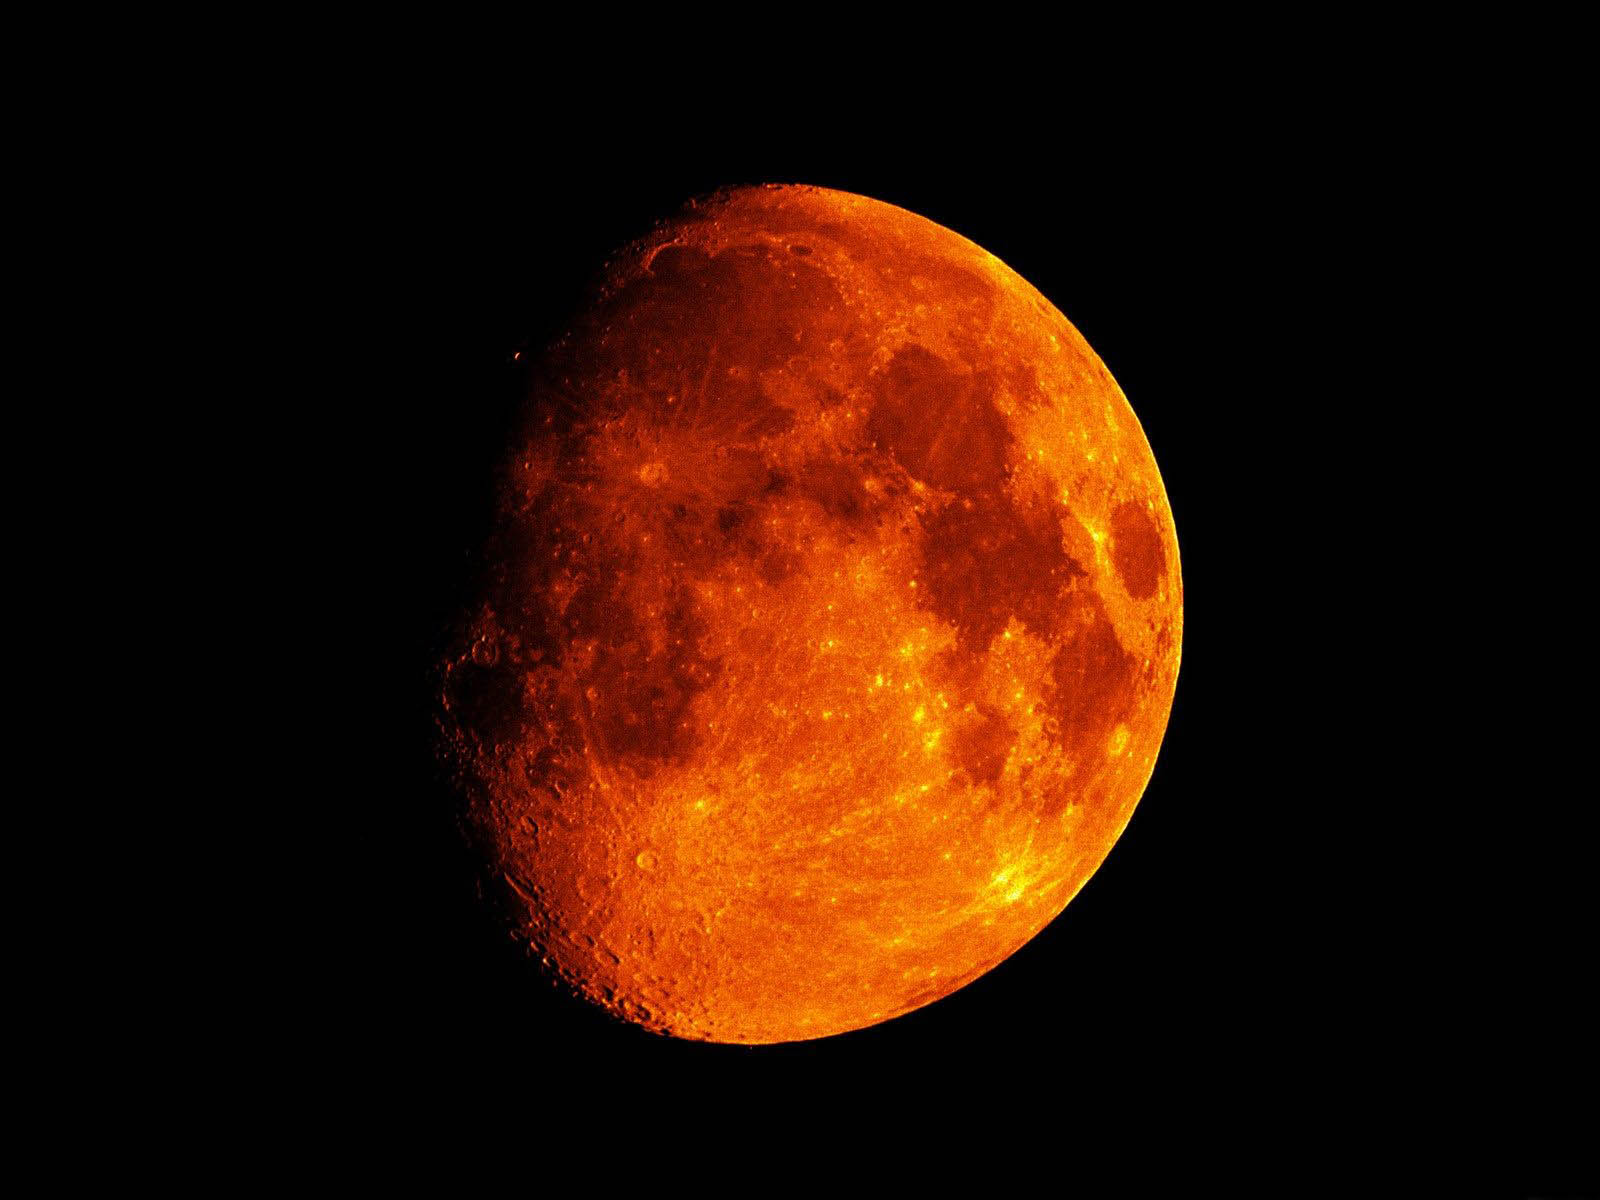 Free Download Red Moon Wallpaper